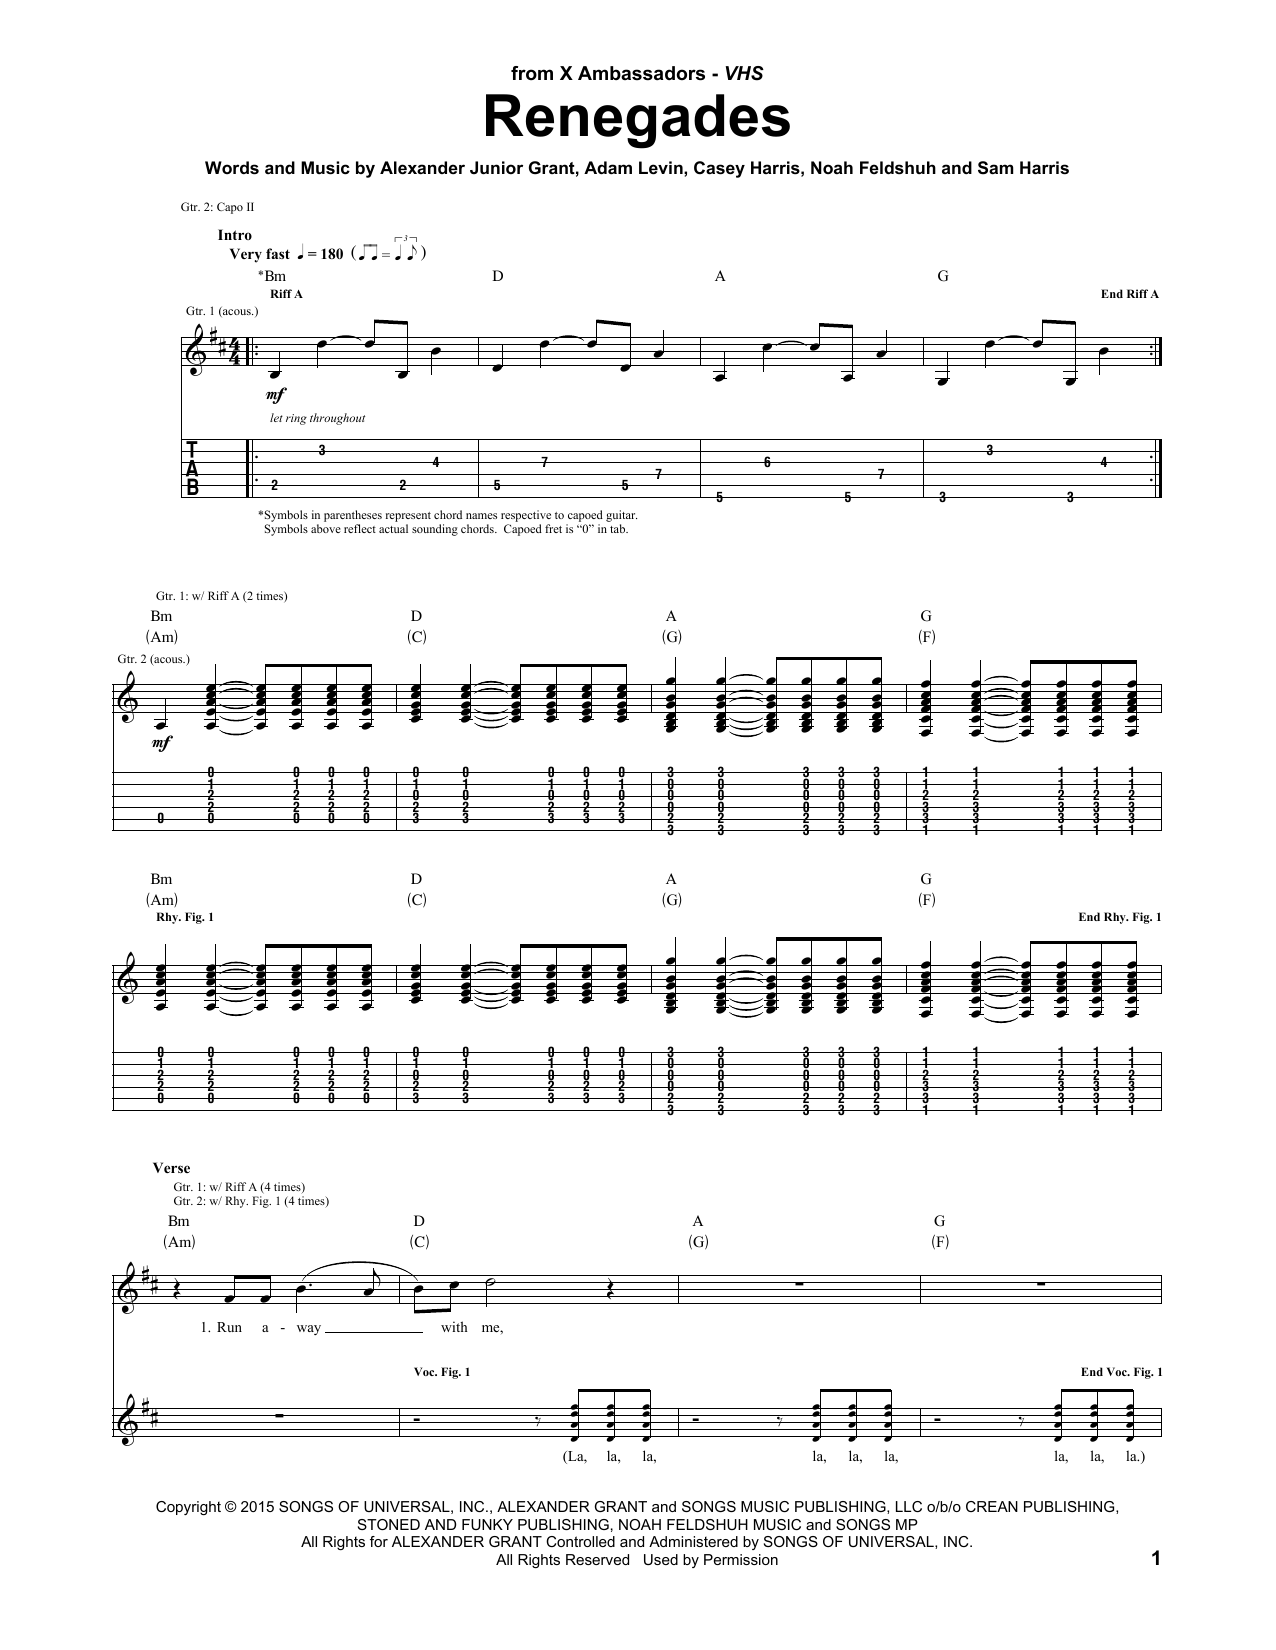 Renegades by X Ambassadors Guitar Lead Sheet Digital Sheet Music